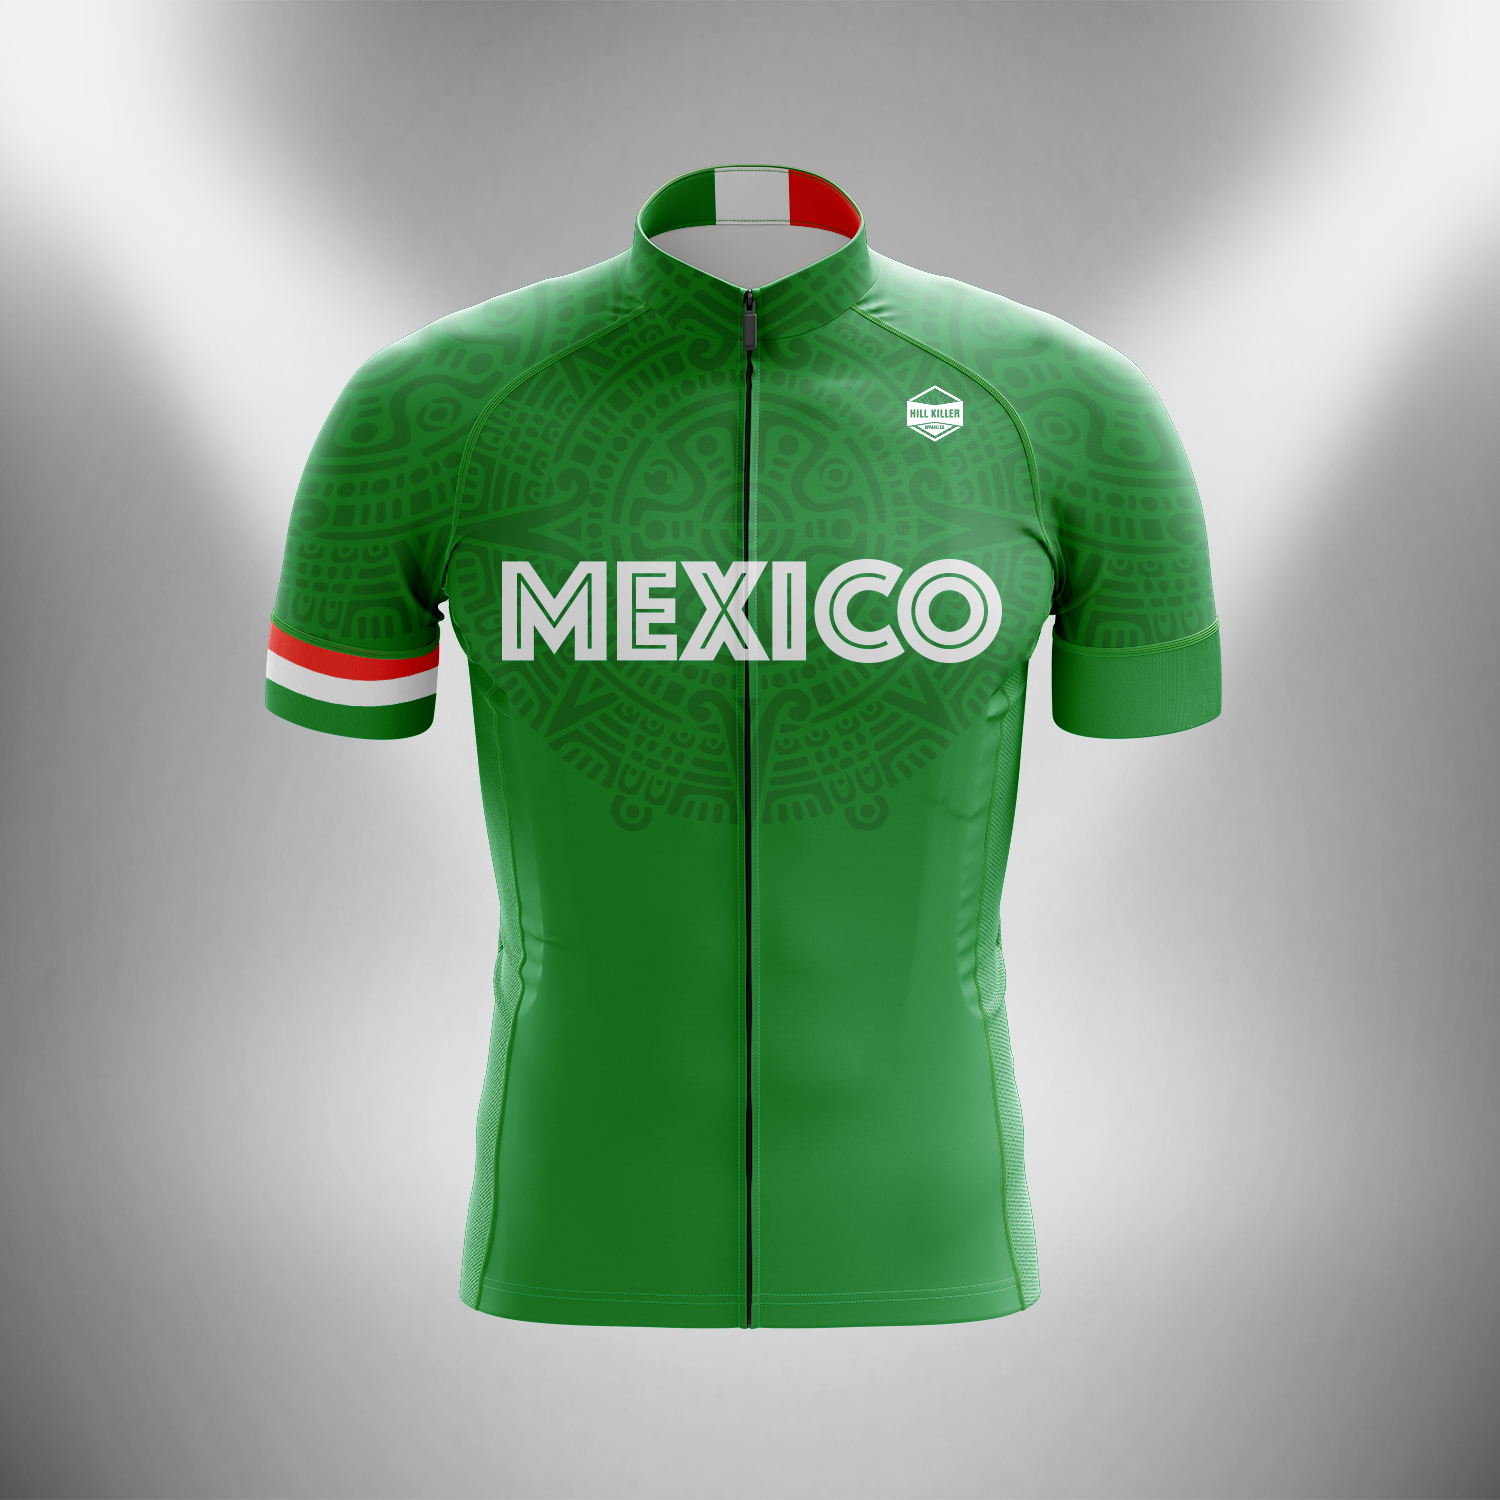 Mexico-jersey-front-mockup.jpg